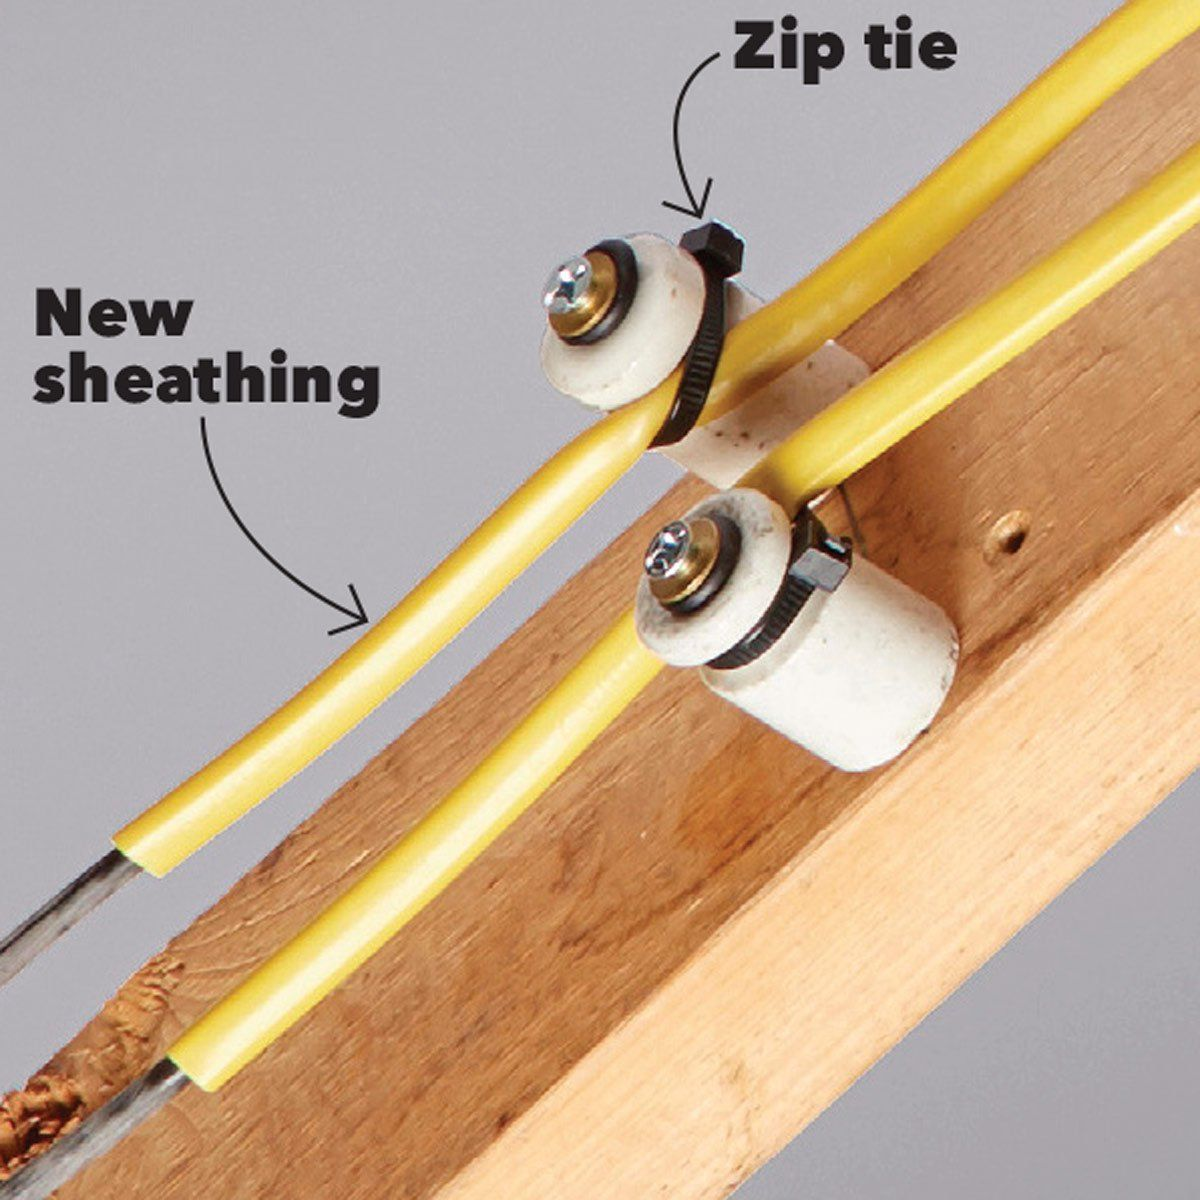 Pin on Home Improvement And Tube Wiring How Does It Work on